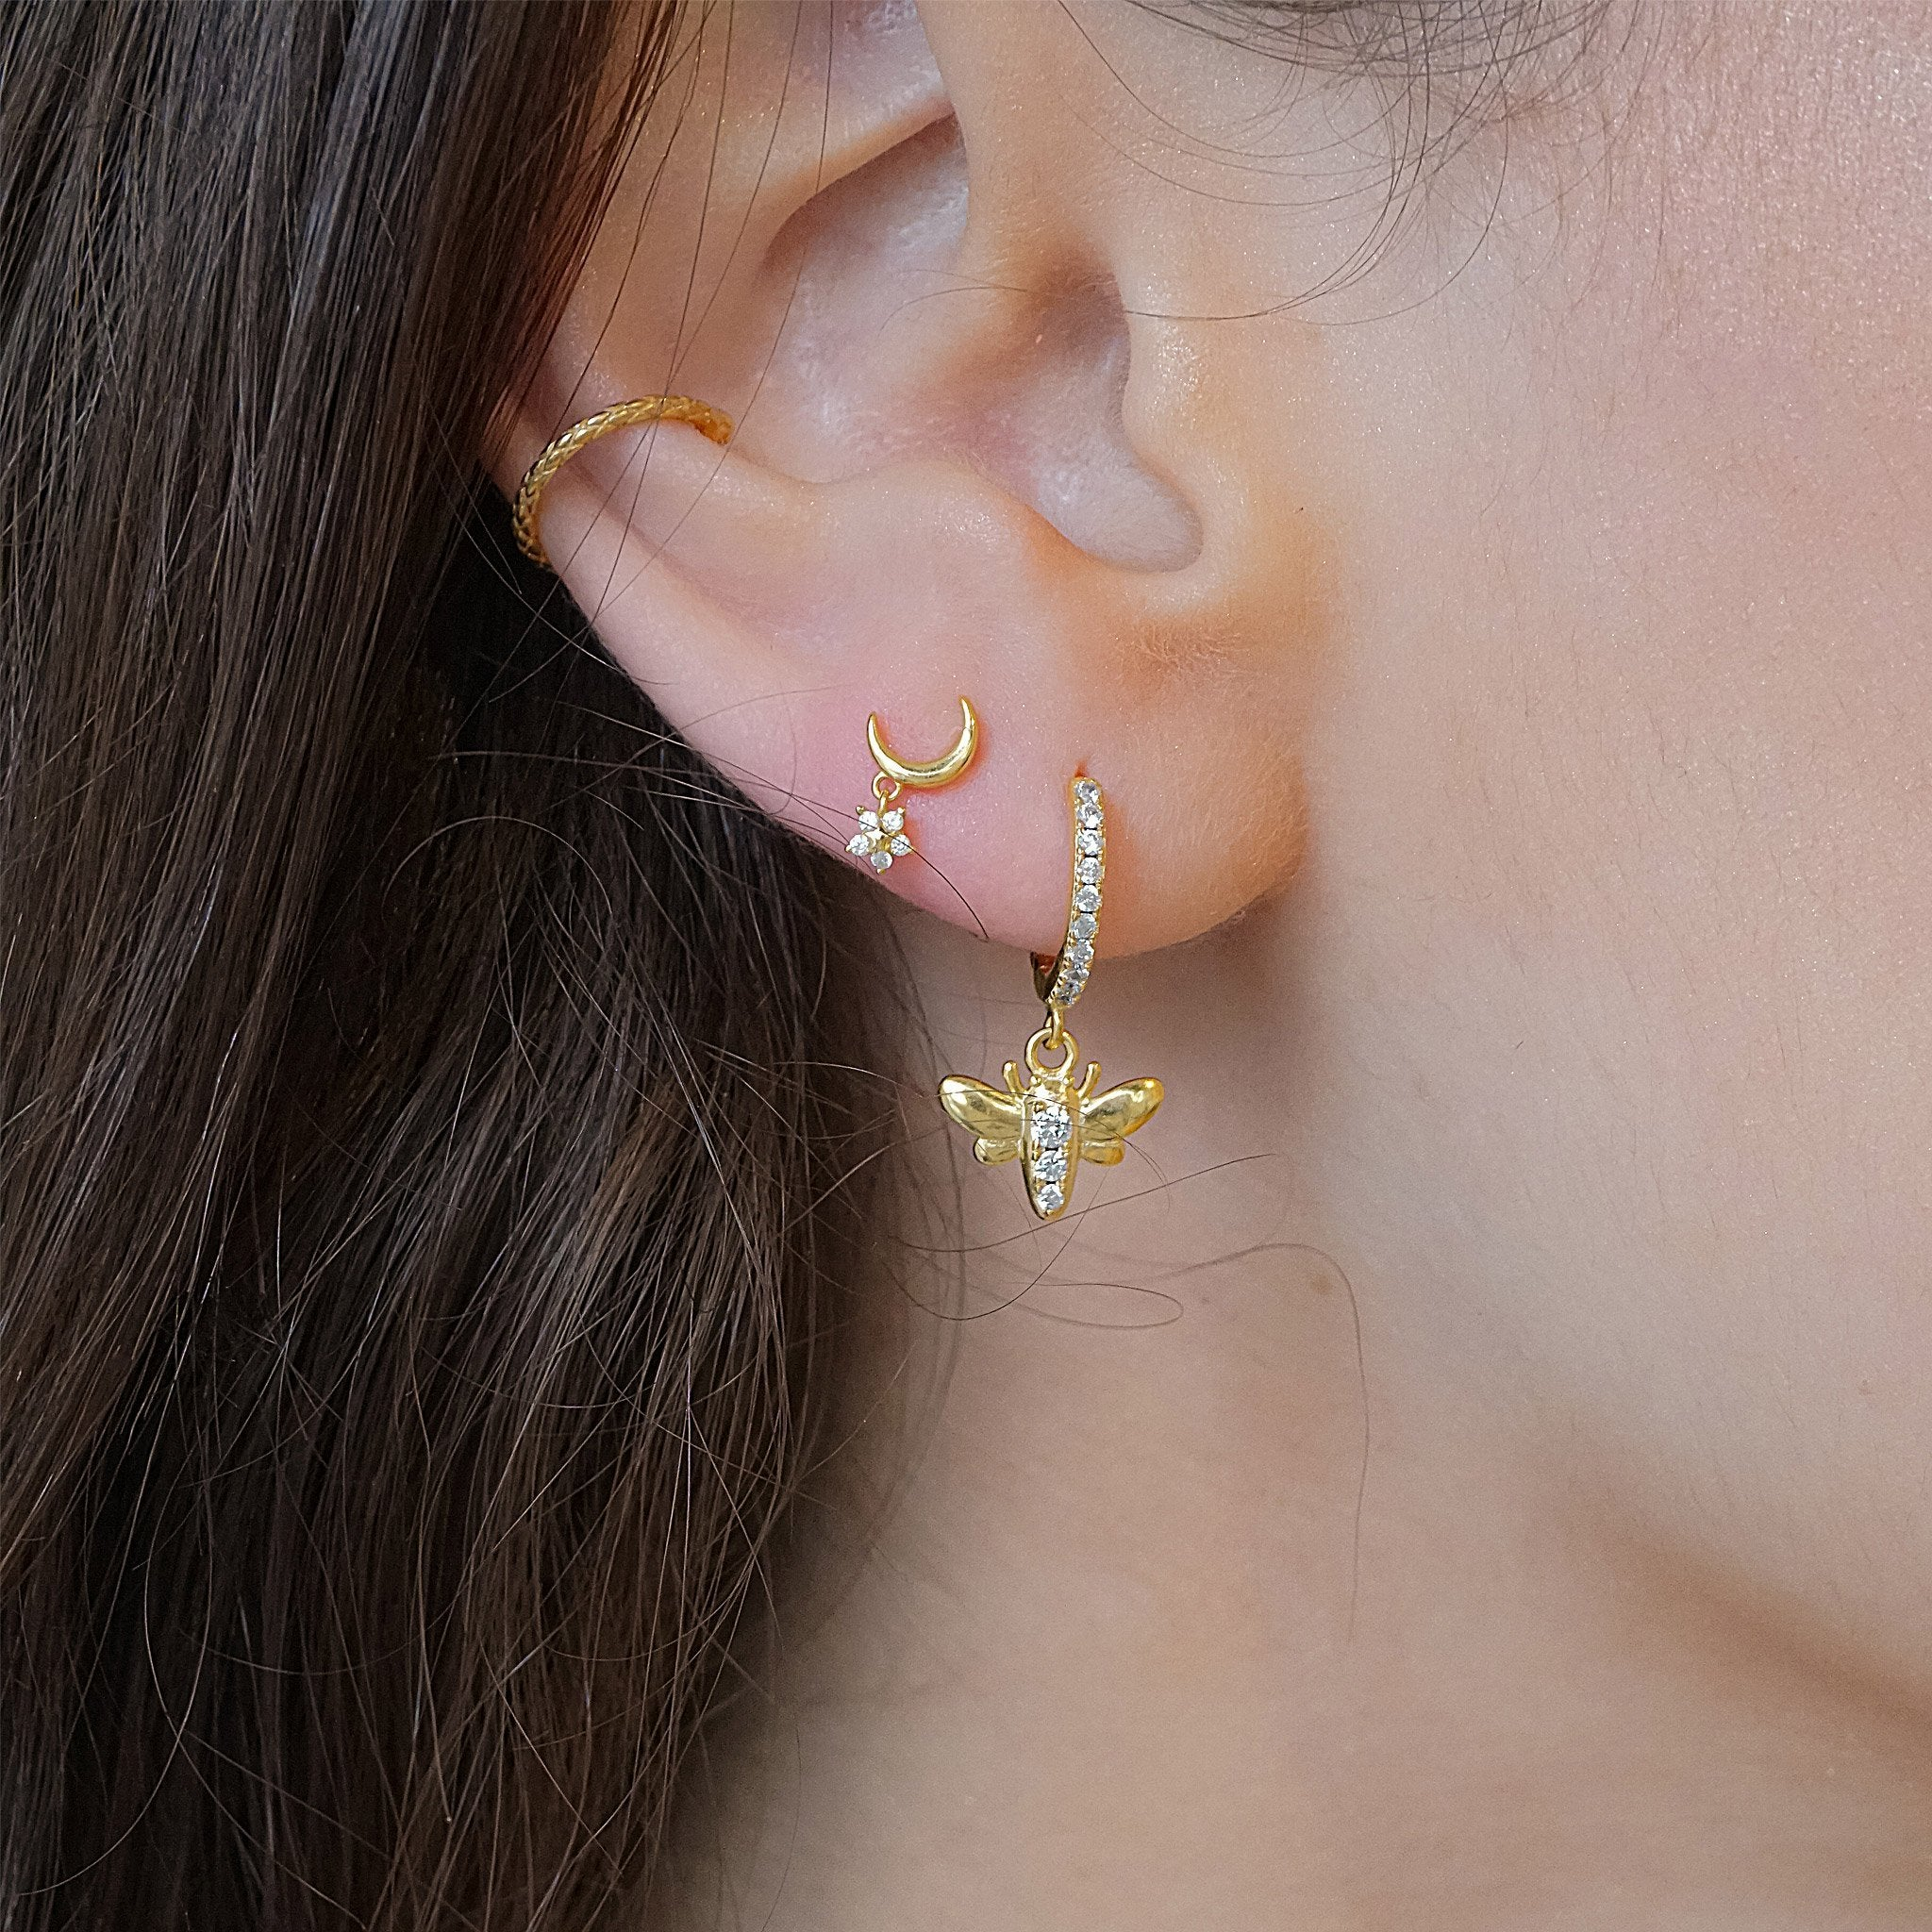 14k gold vermeil earrings ear cuff bee earring star drop cubic zirconia kemmi jewelry boho chic